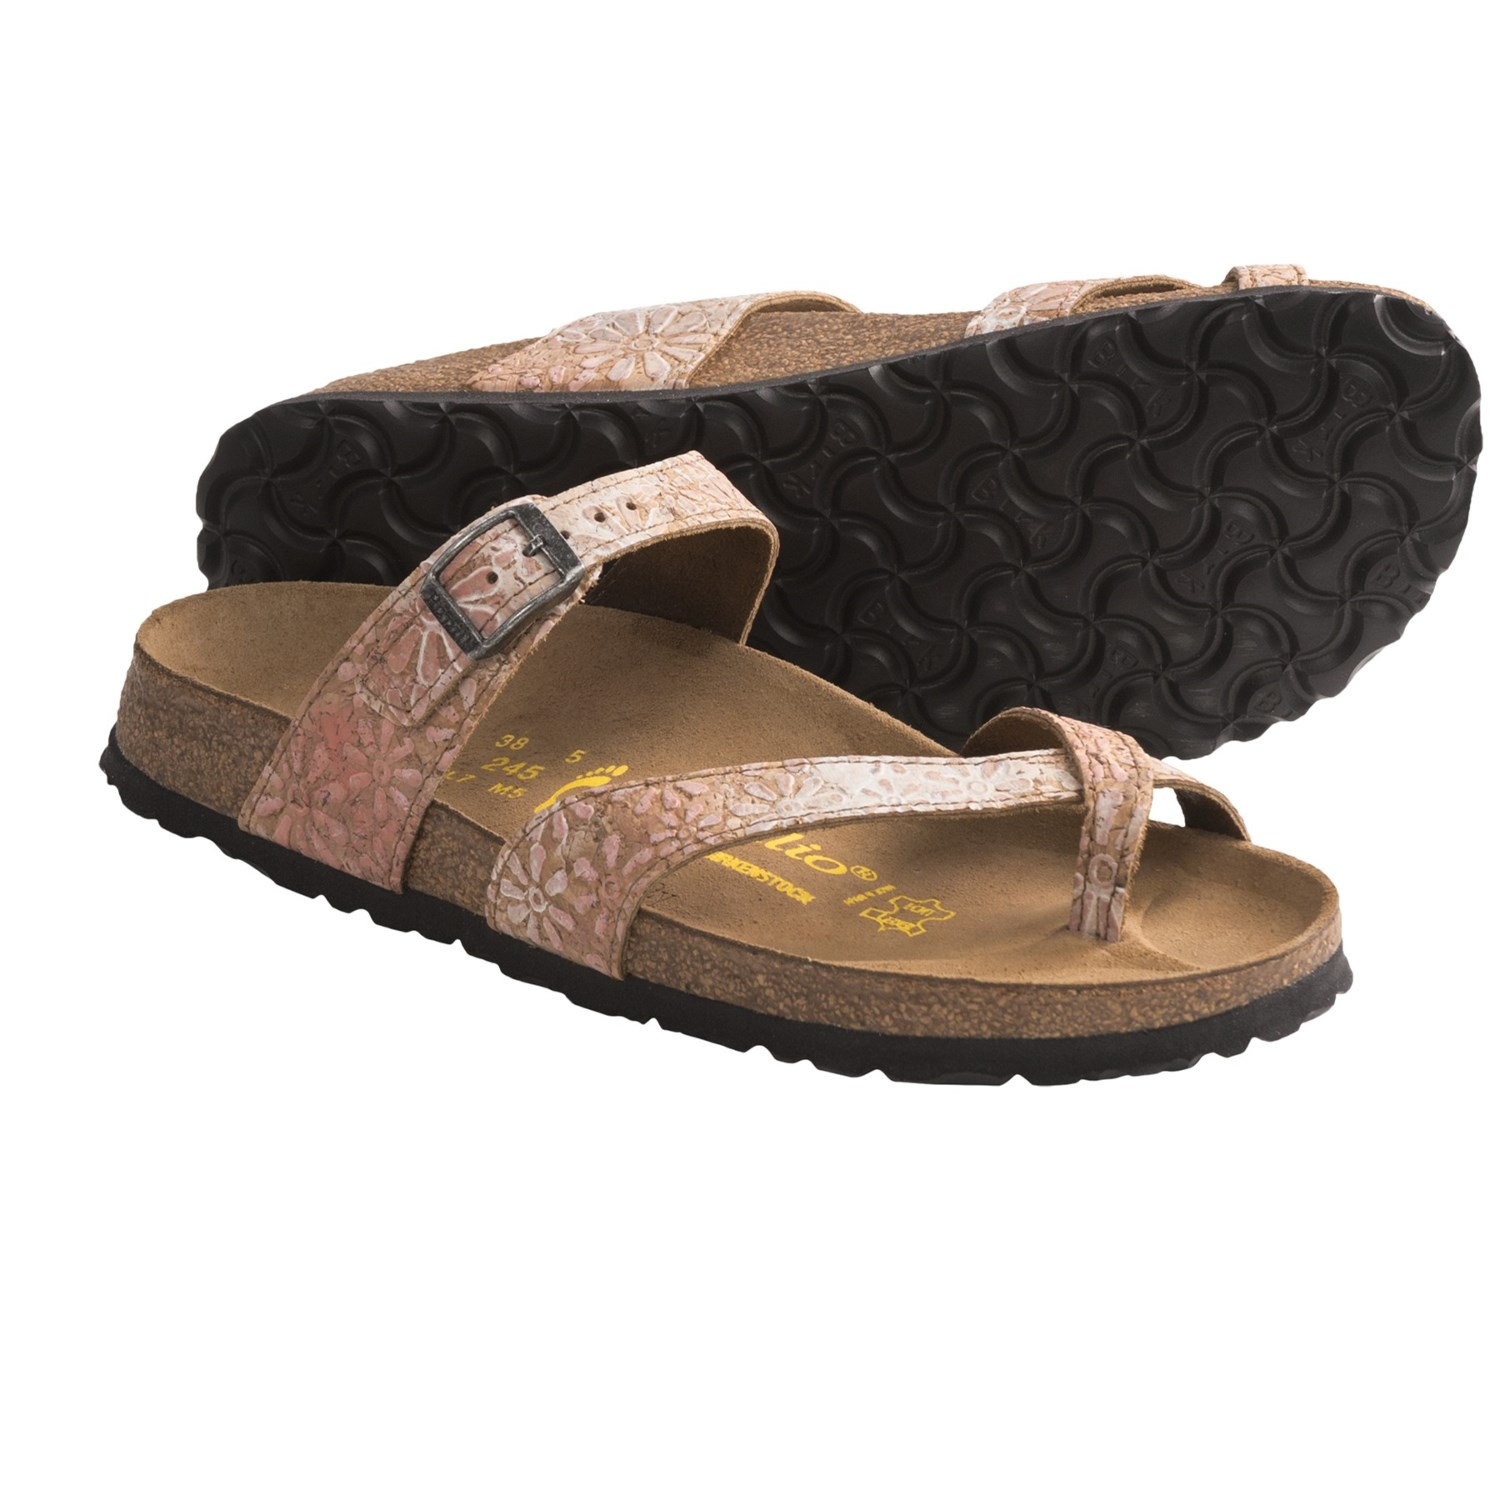 papillio by birkenstock tabora cork flower sandals for women save 35. Black Bedroom Furniture Sets. Home Design Ideas